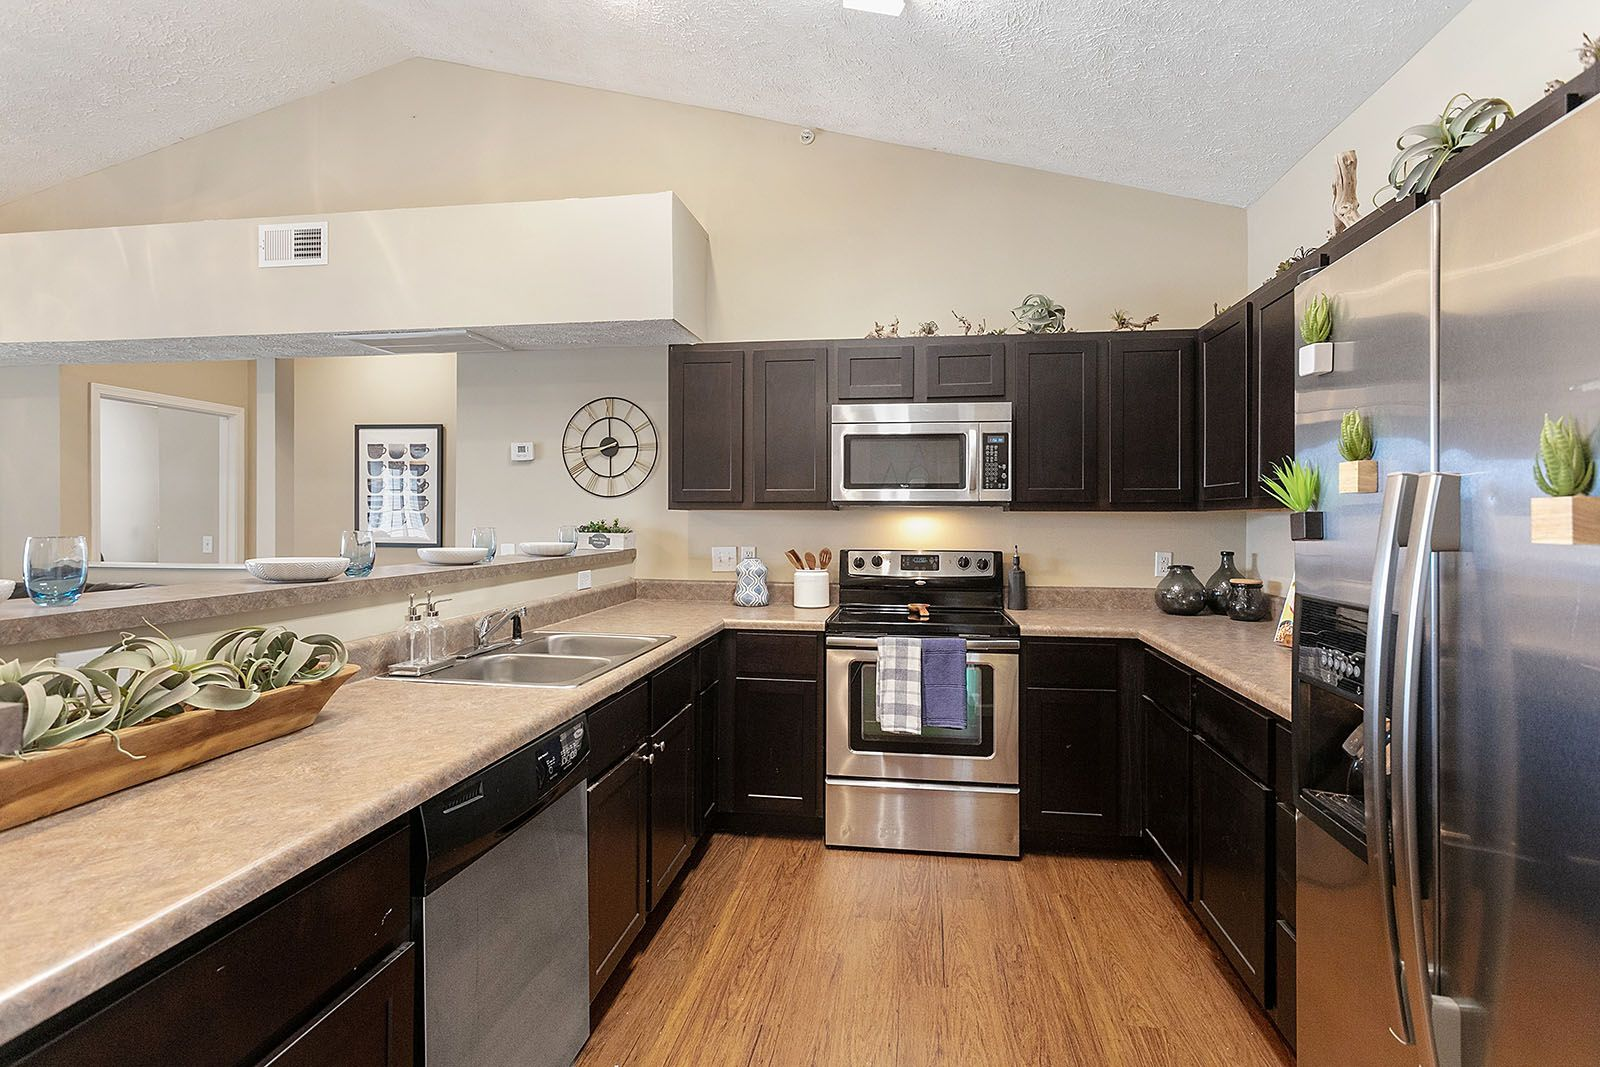 Our Spacious Fully Furnished Floor Plans Include Full Size Beds Private Balconies Fully Equipped Kitchens In Unit Washe Pet Friendly Apartments Home Campus